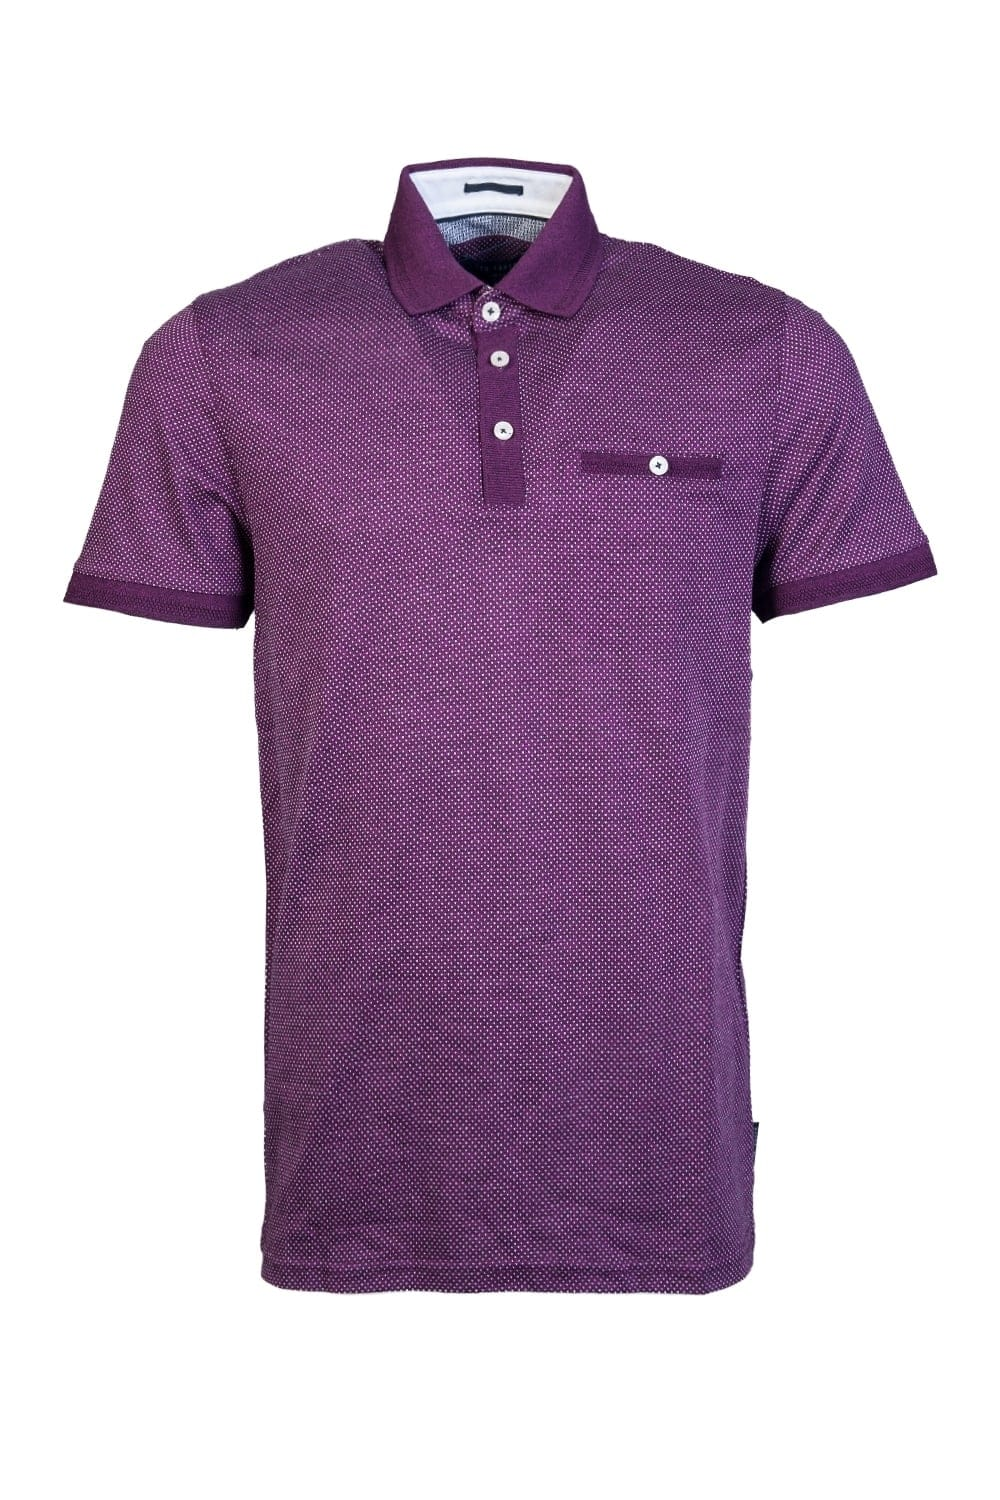 44f4d1015686 Ted Baker Polo Shirt TS7M GB31 OTTO 65